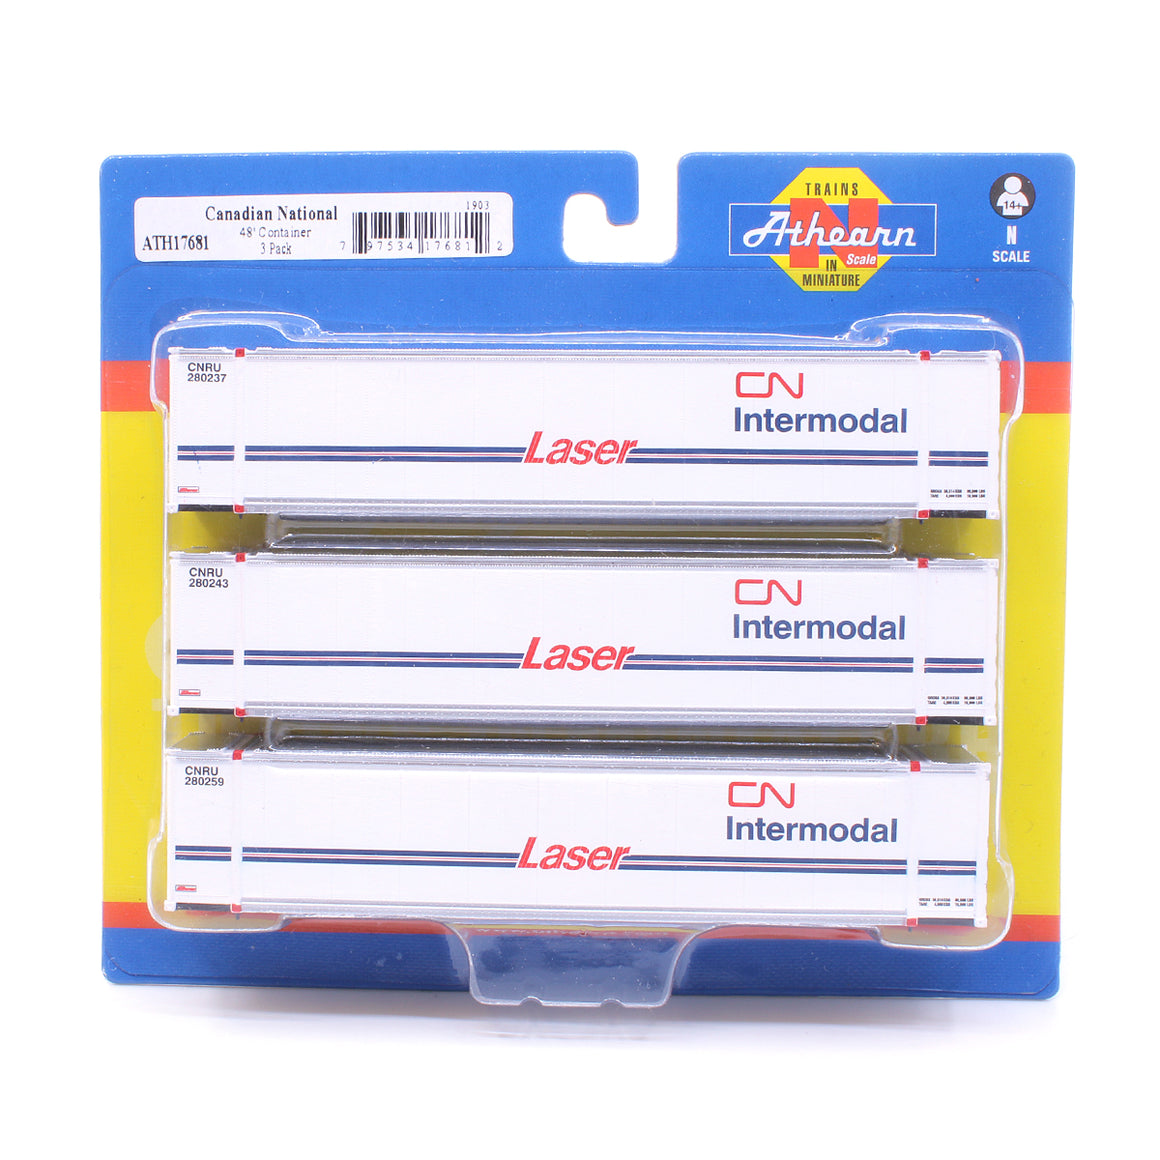 N Scale: 48' Container - Canadian National - 3 Pack